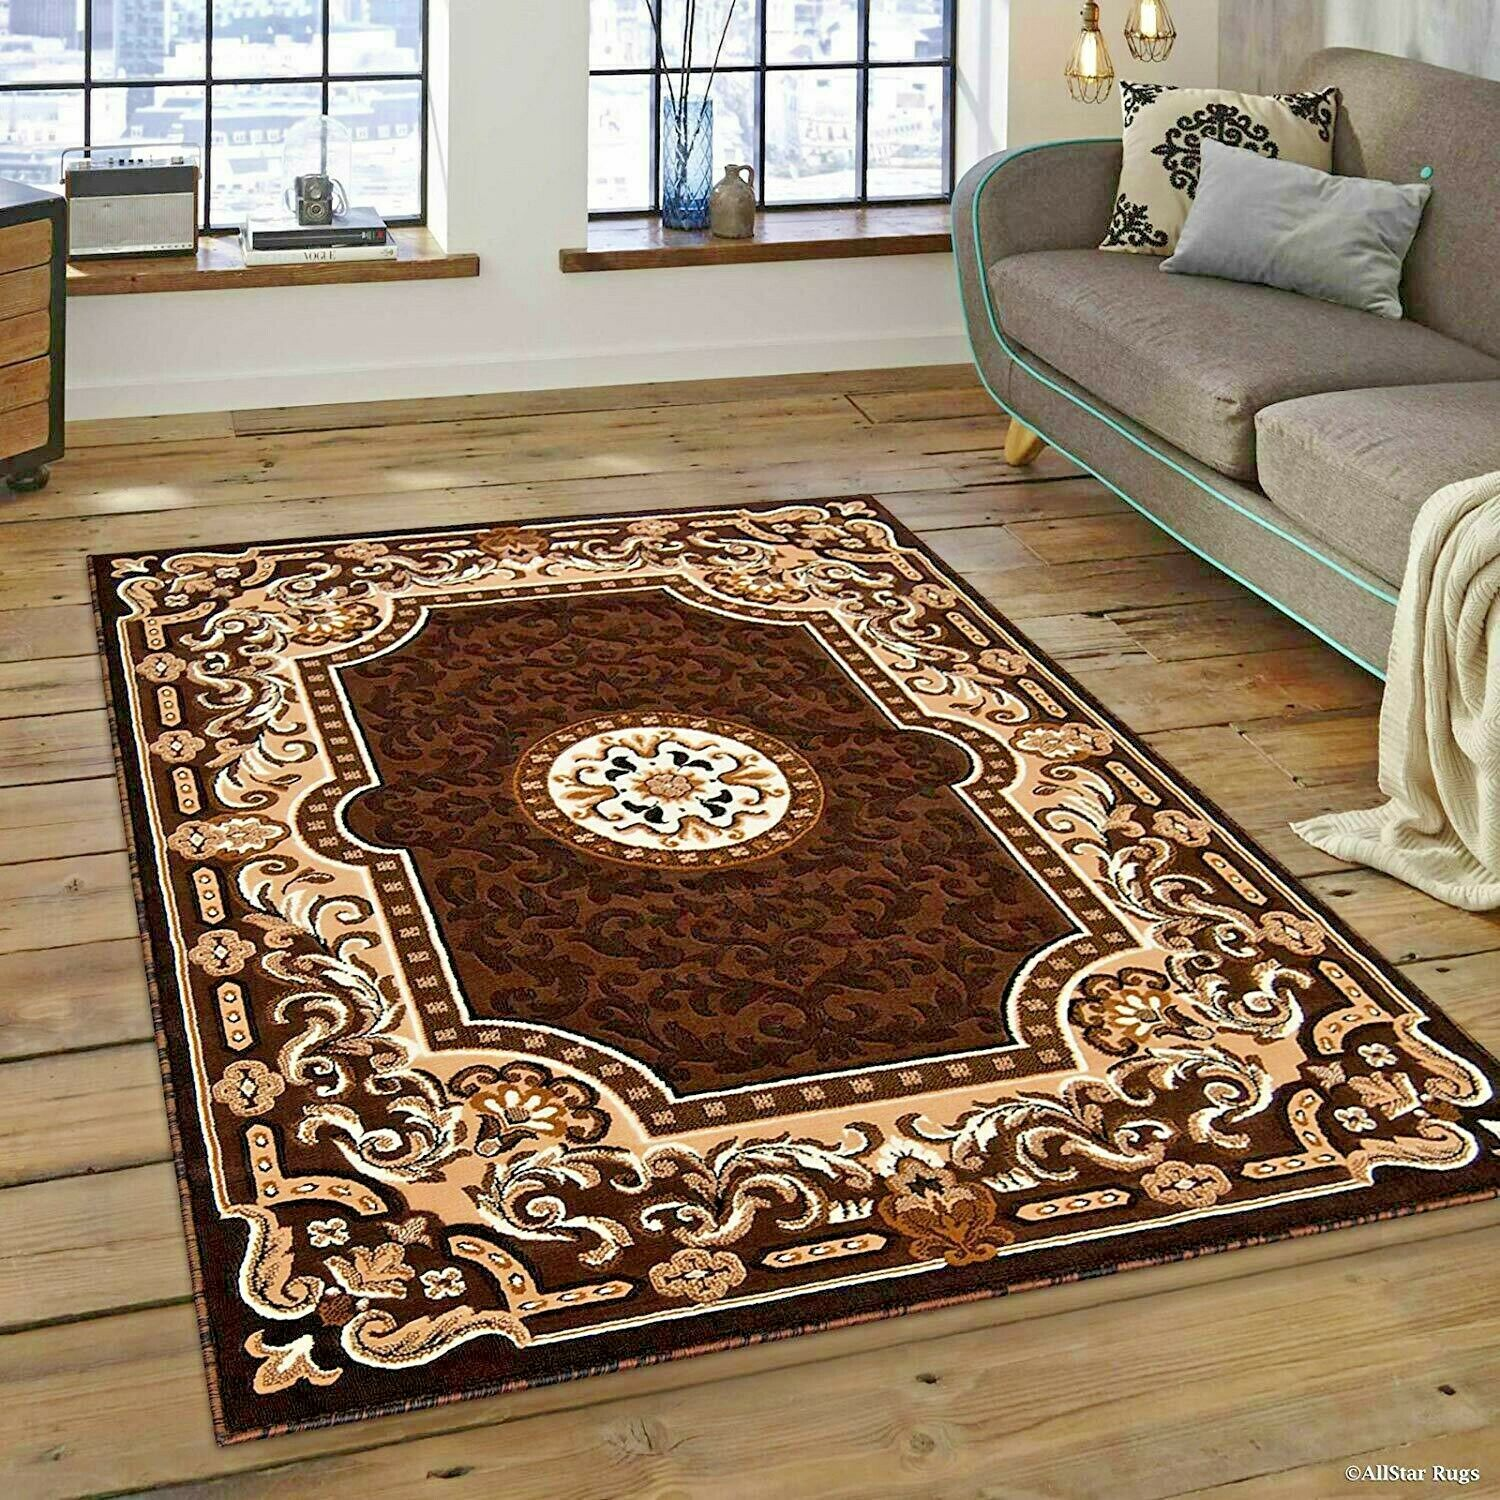 Details About Rugs Area Carpet 8x10 Rug Oriental Brown Large Cool Floor 5x7 New